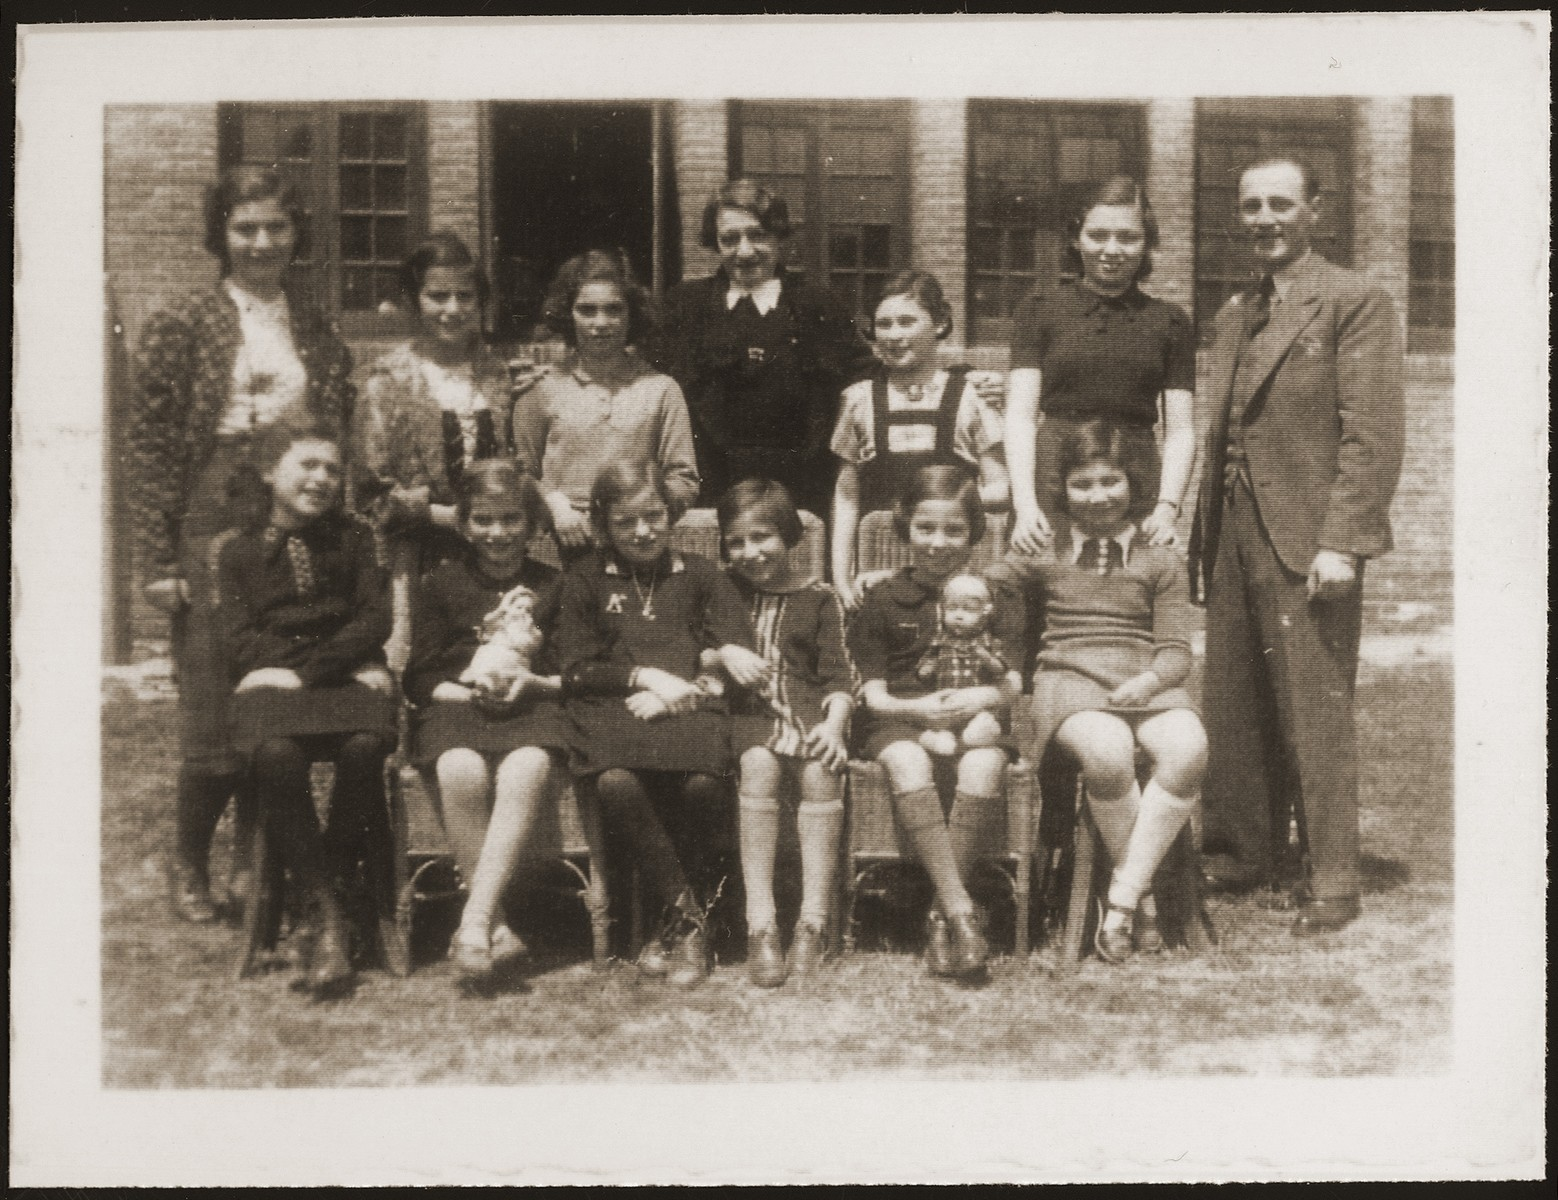 A school class of Jewish refugee children, including Hannelore Mansbacher (seated 1st row, third from left), at Transition Upper school on Kinchow Road in Shanghai.